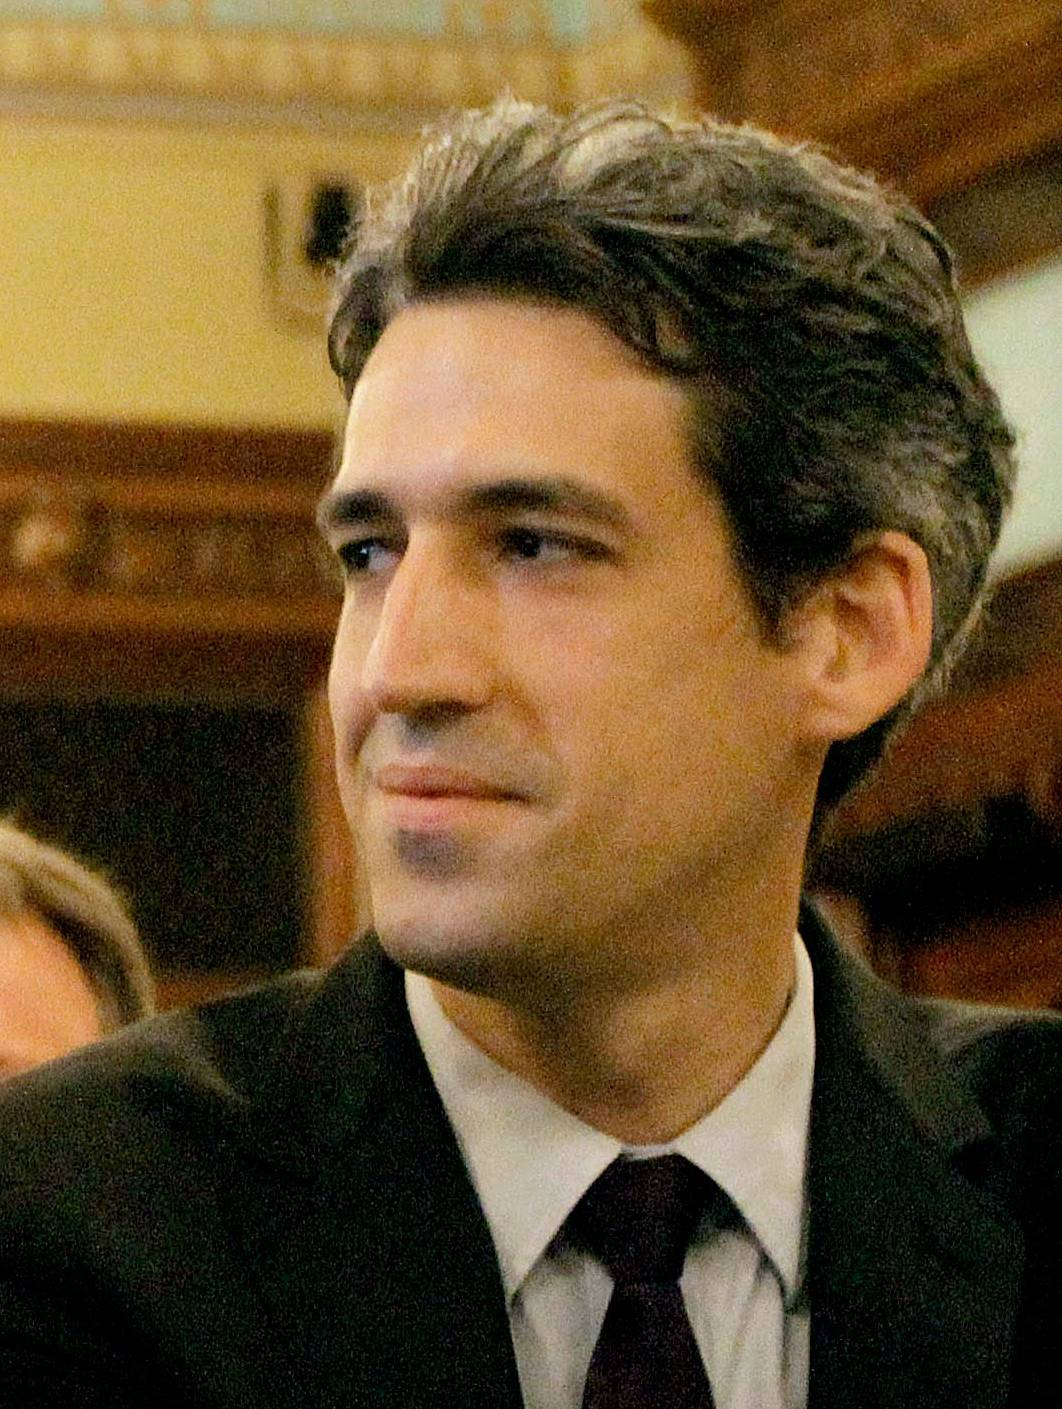 Biss announces Democratic bid for governor